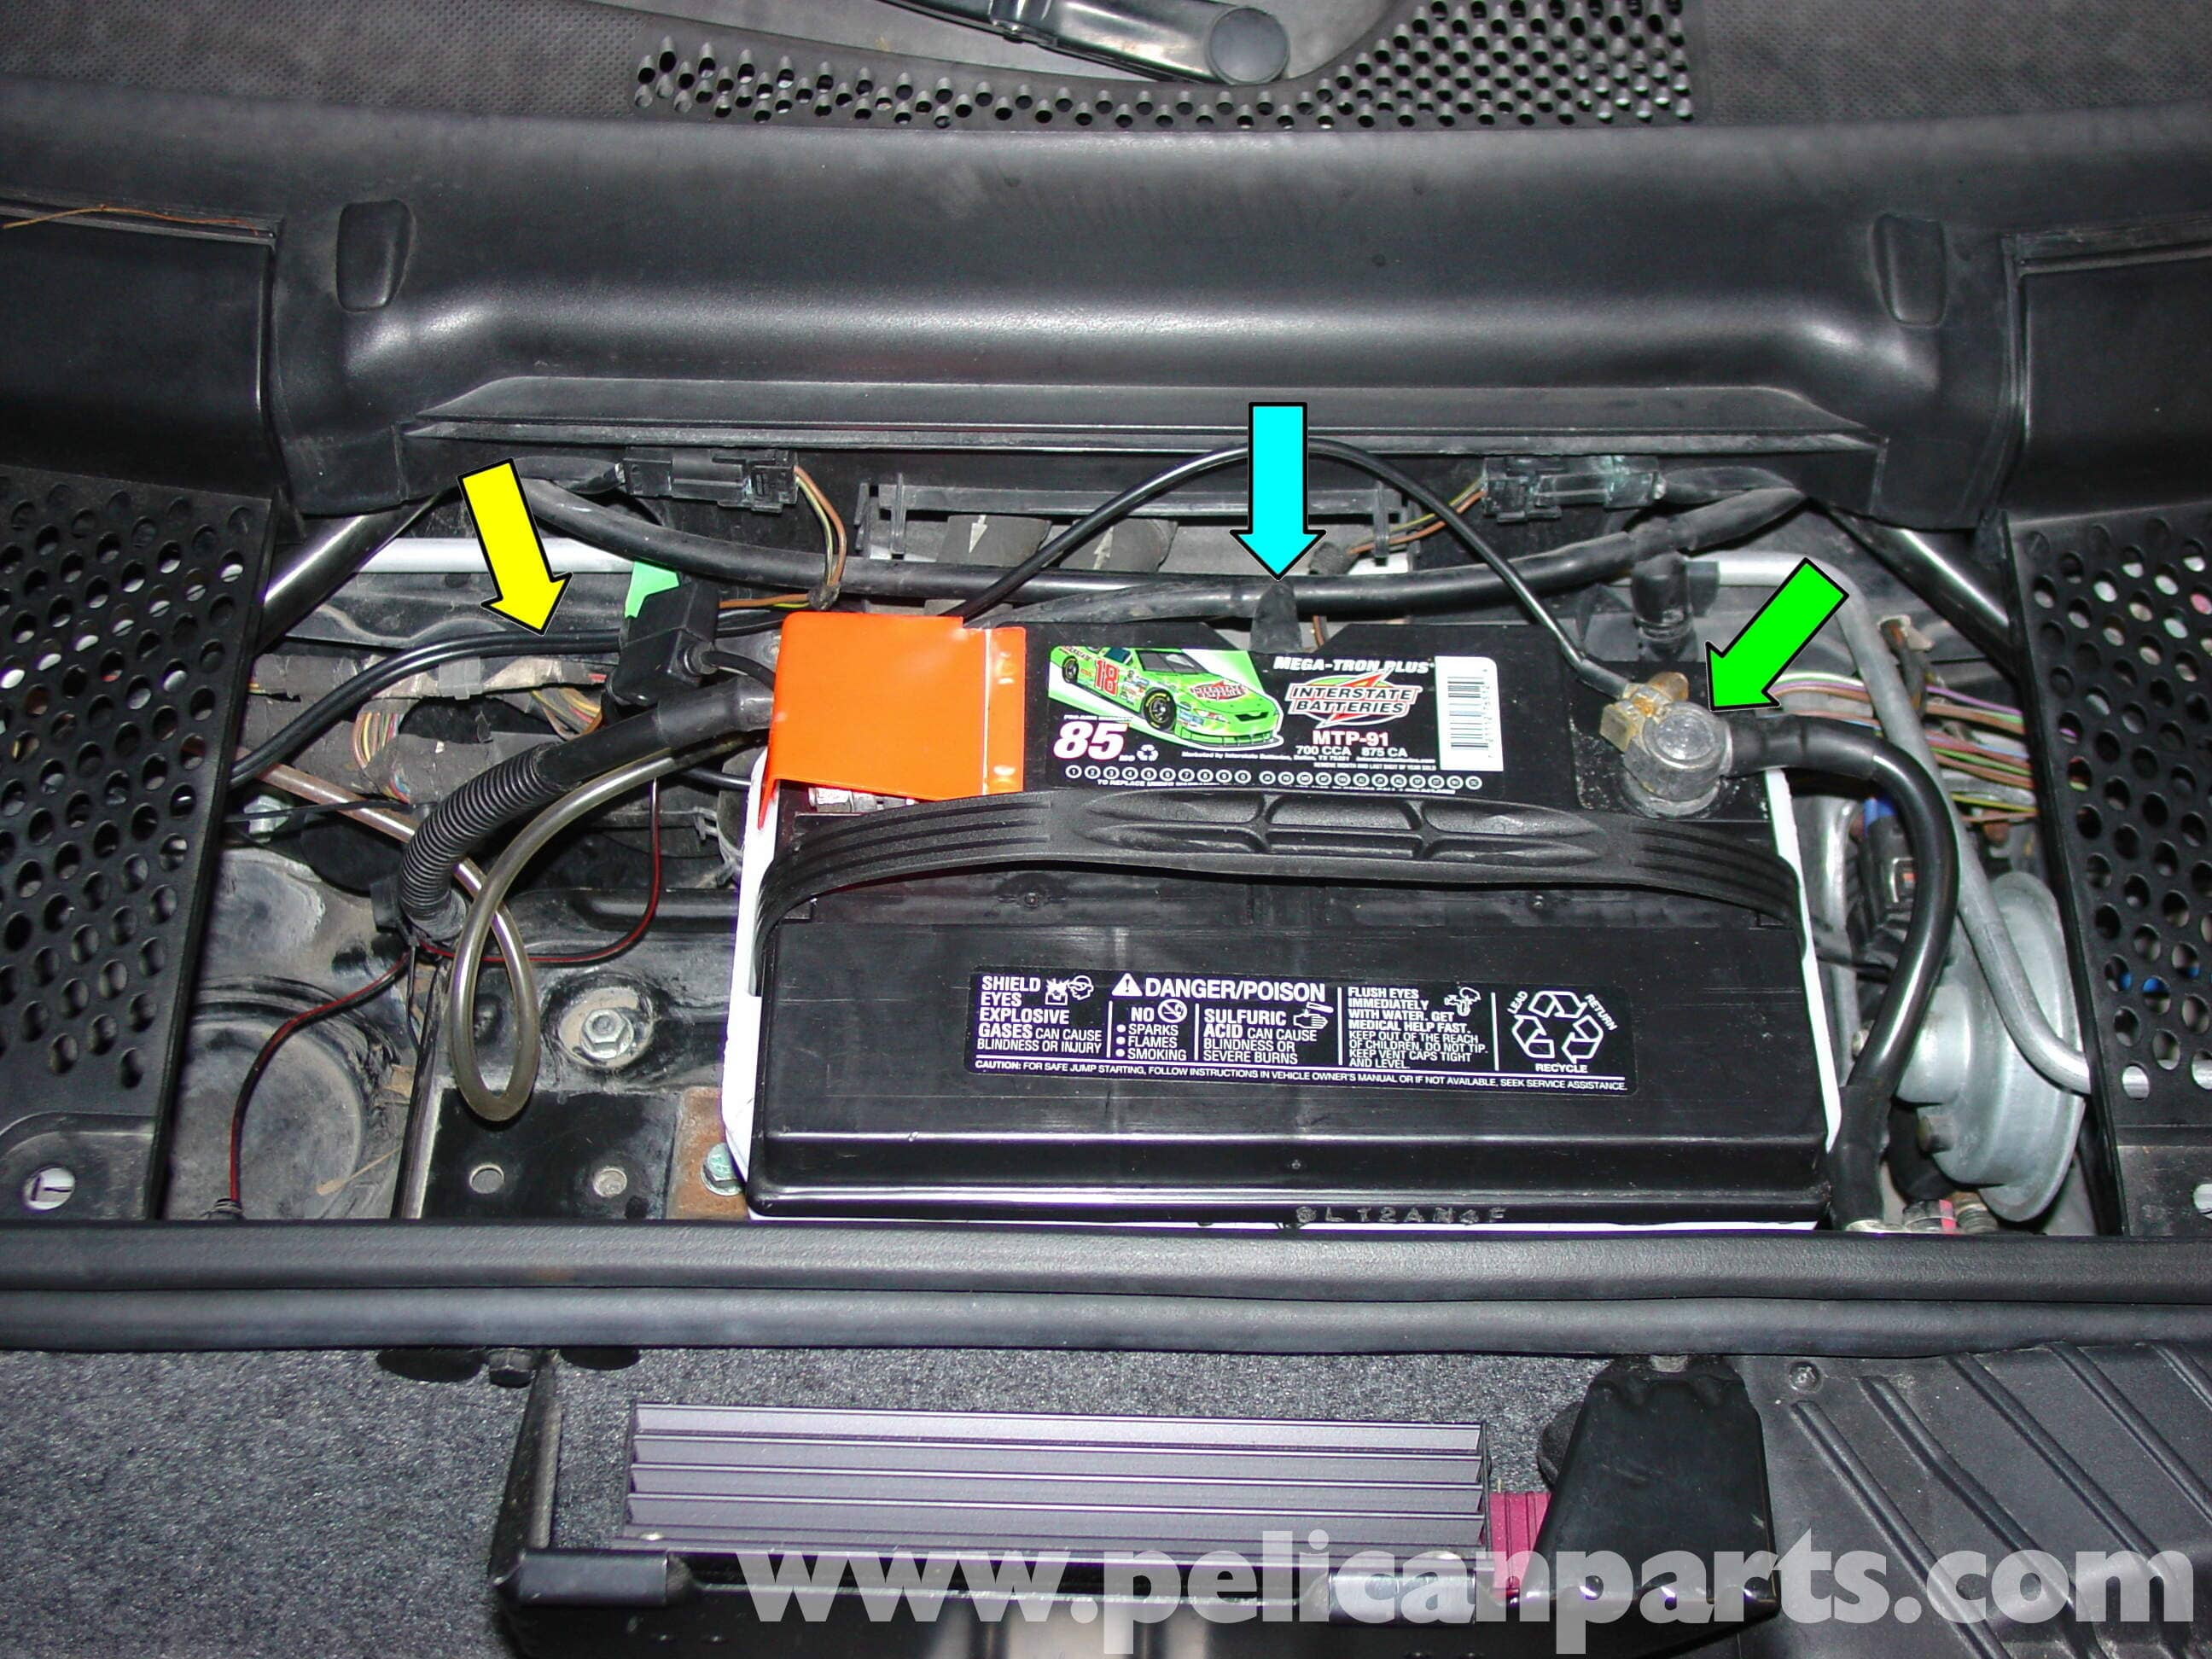 Porsche Boxster Battery Disconnect Switch Buddy Alarm Wiring Diagram Large Image Extra